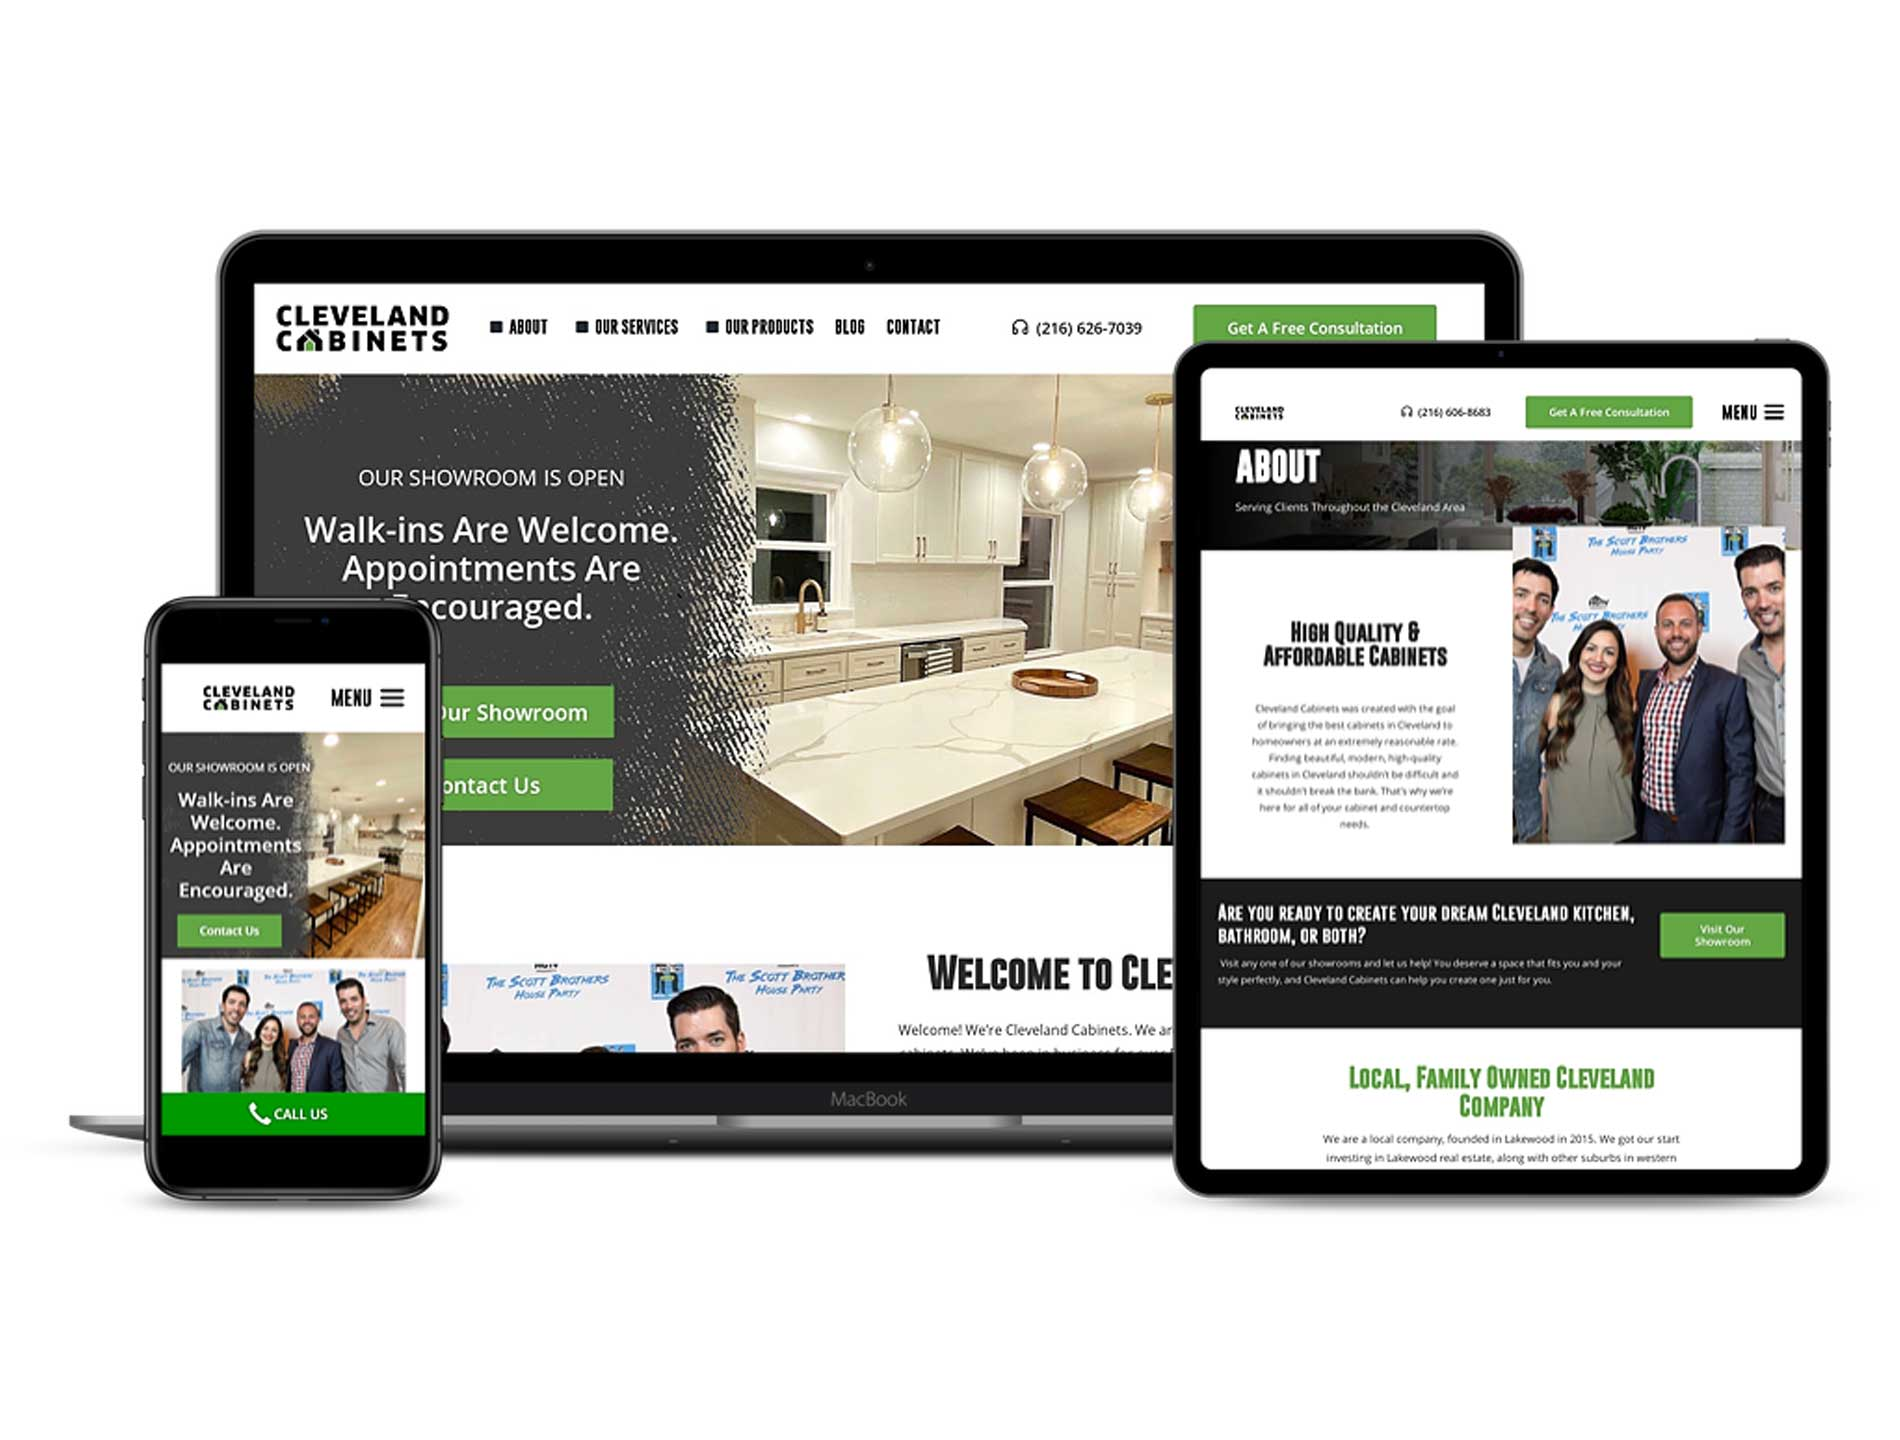 Cleveland Cabinets New Website Design Responsiveness on mobile, tablet, and laptop